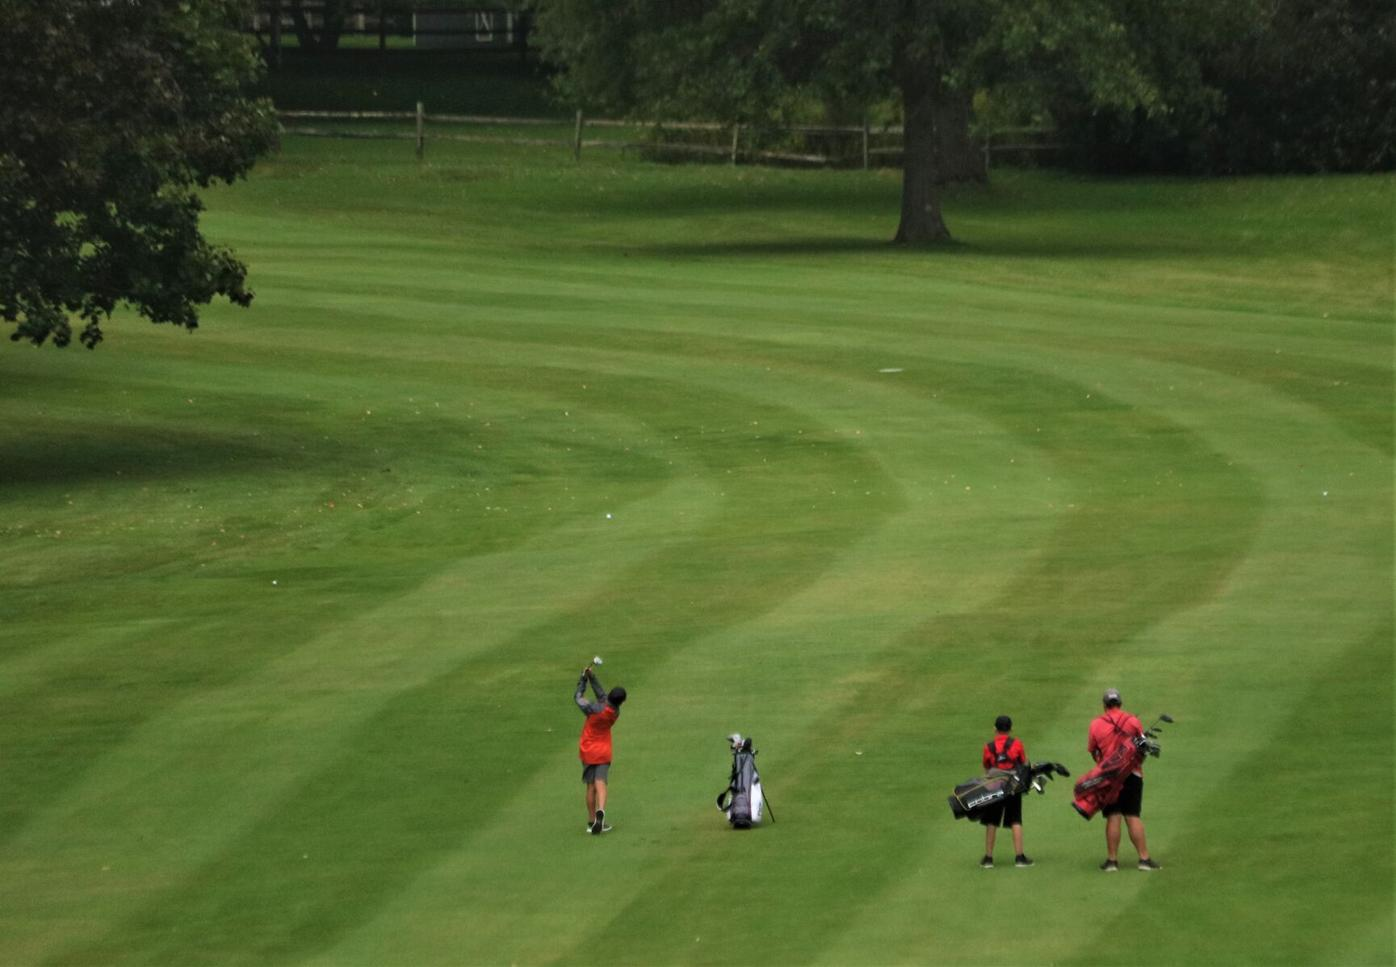 Golfers hit from the fairway